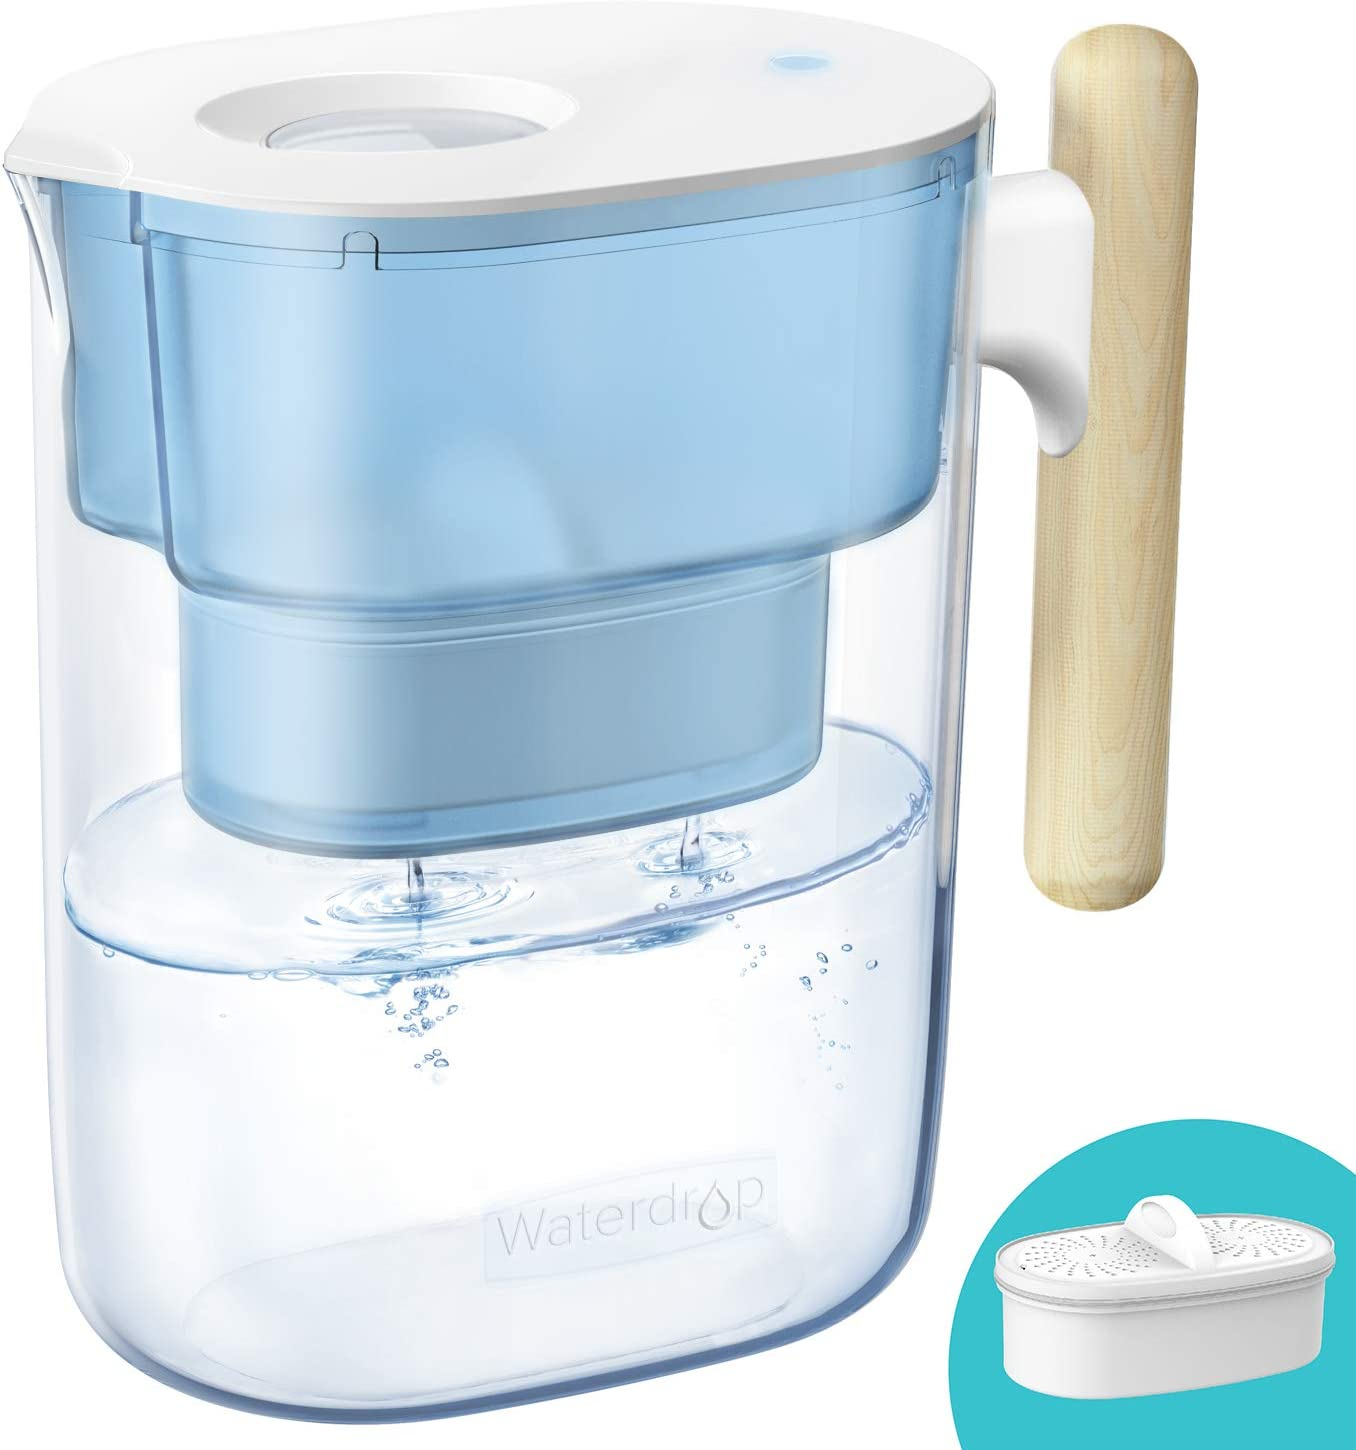 Waterdrop Chubby 10-Cup Water Filter Pitcher with 1 Filter, Long-lasting (200 gallons), 5X Times Lifetime Filtration Jug, Reduces Lead, Fluoride, Chlorine and More, BPA Free, Blue